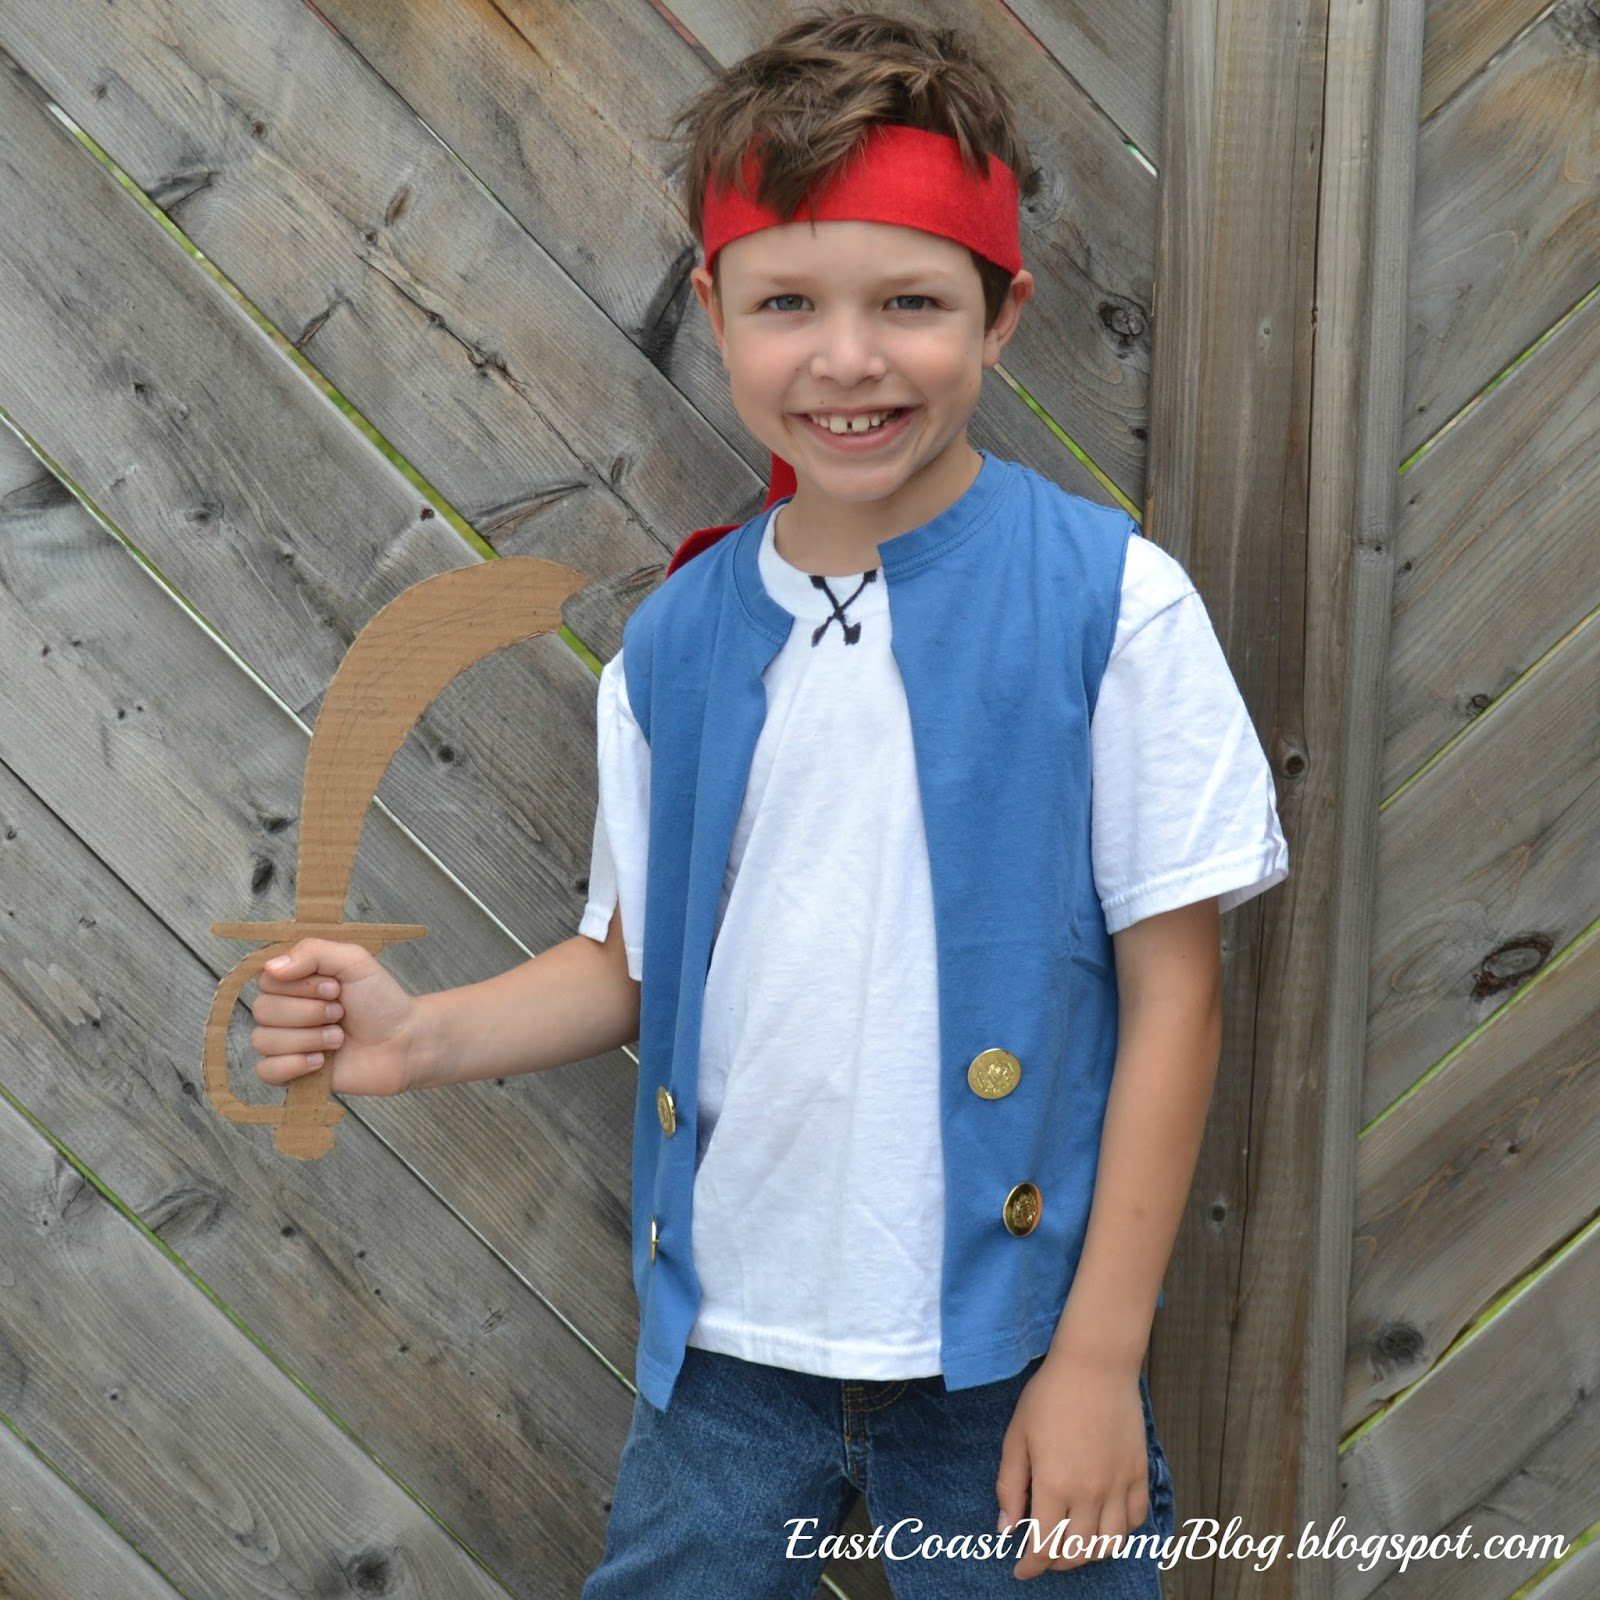 East Coast Mommy: Top 5 Pirate Play Ideas